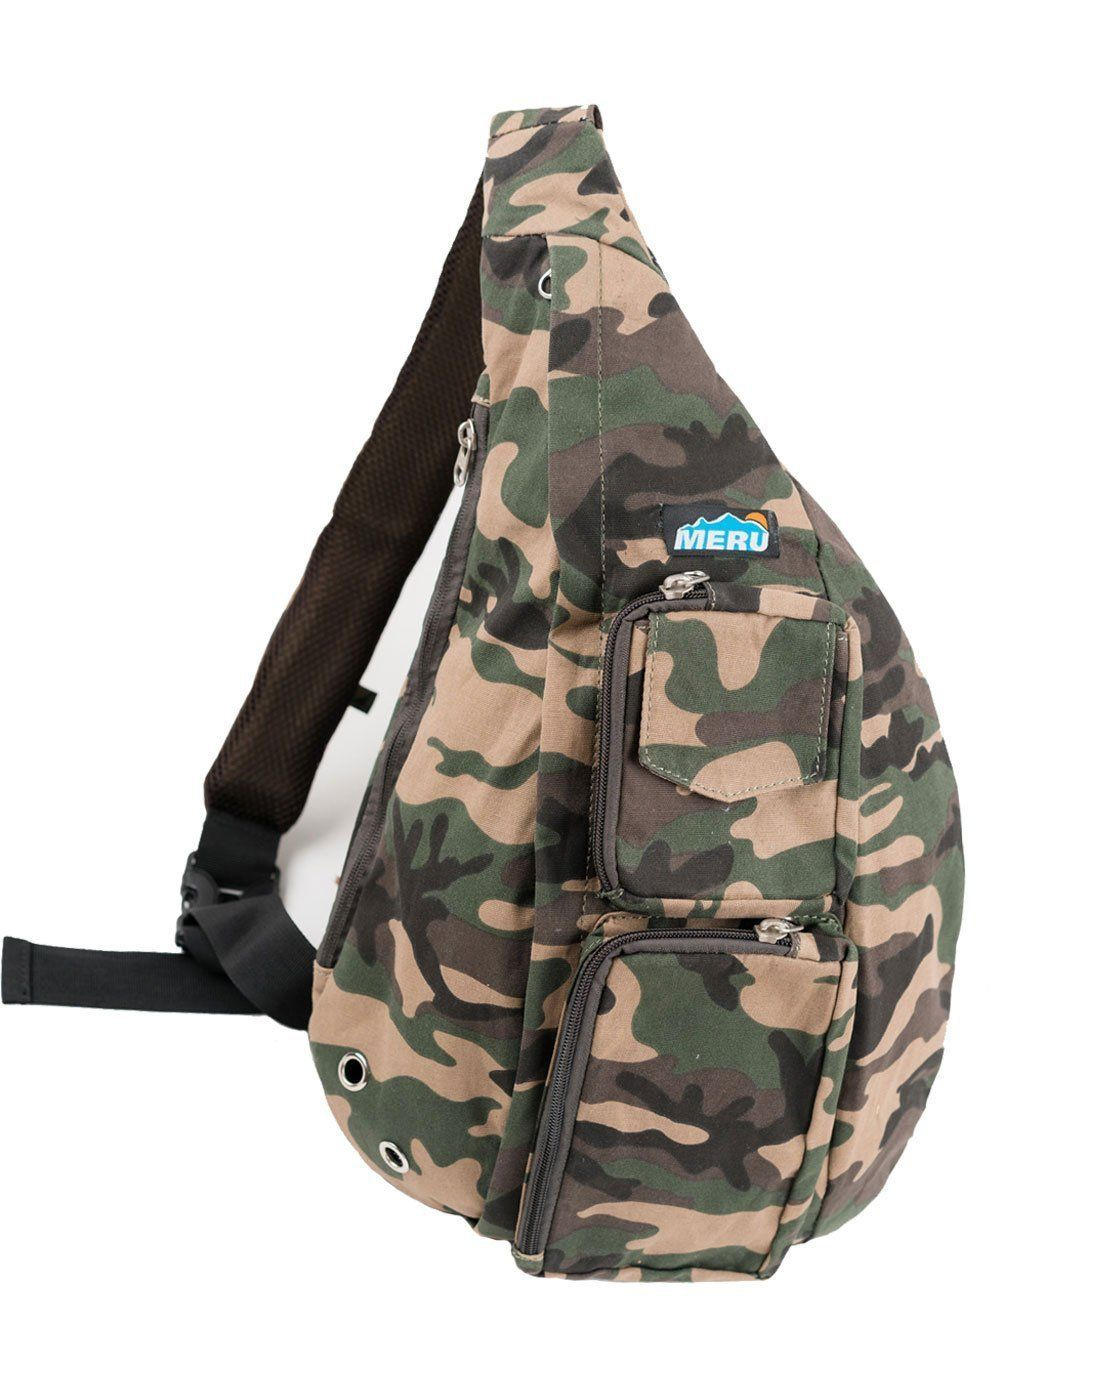 37662ca7273d Amazon.com  Meru Sling Backpack Bag - Small Single Strap Crossbody Pack for  Women and Men (Camouflage)  Sports   Outdoors